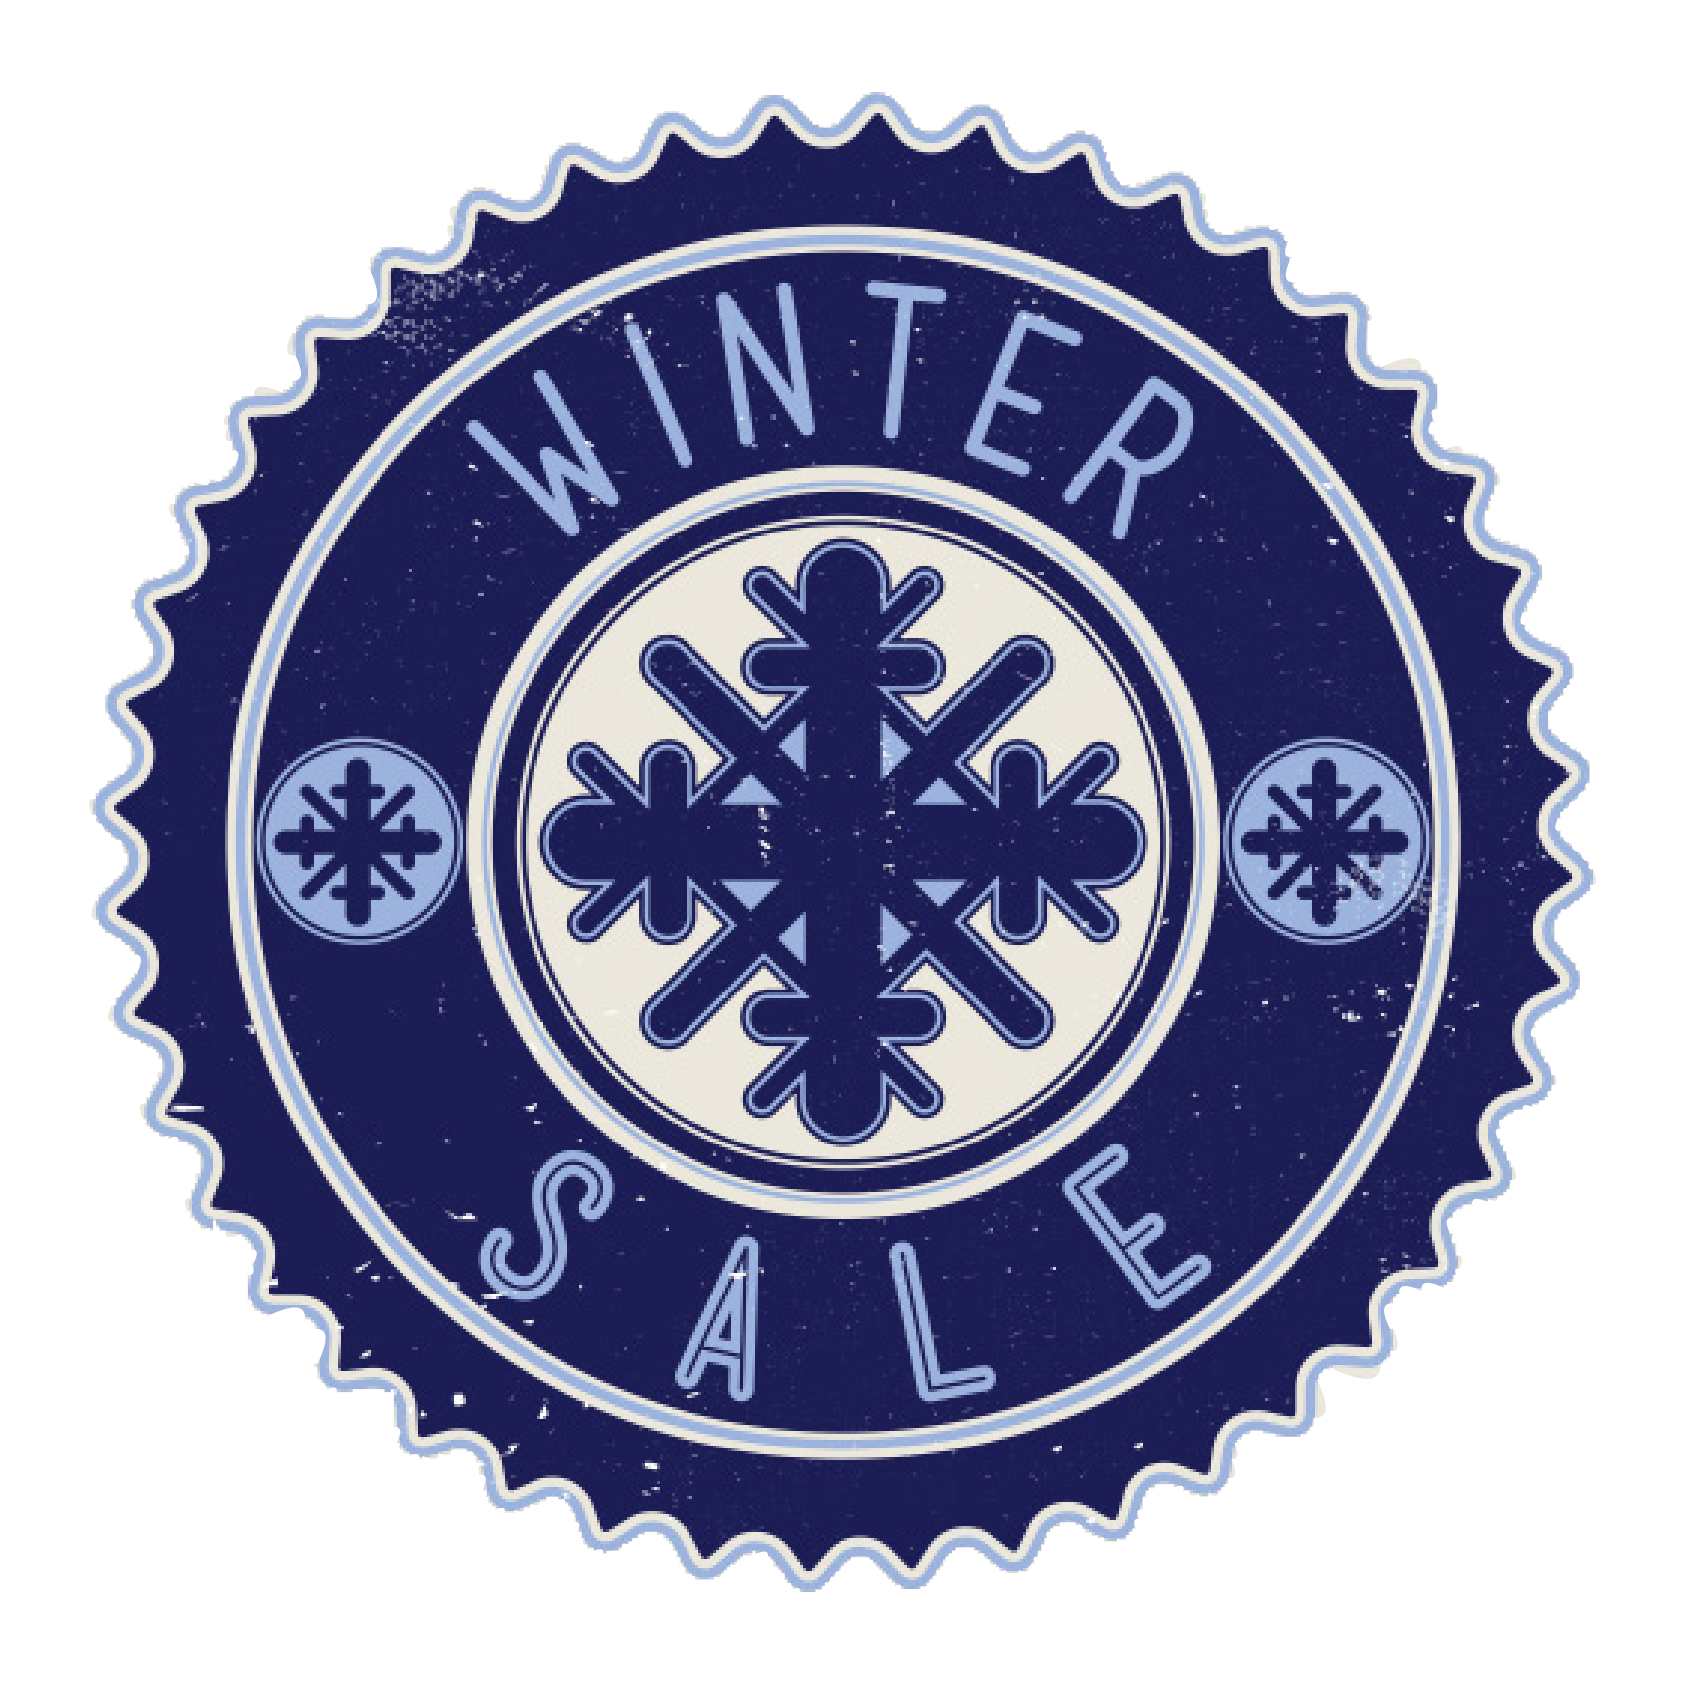 WinterSale2015.png